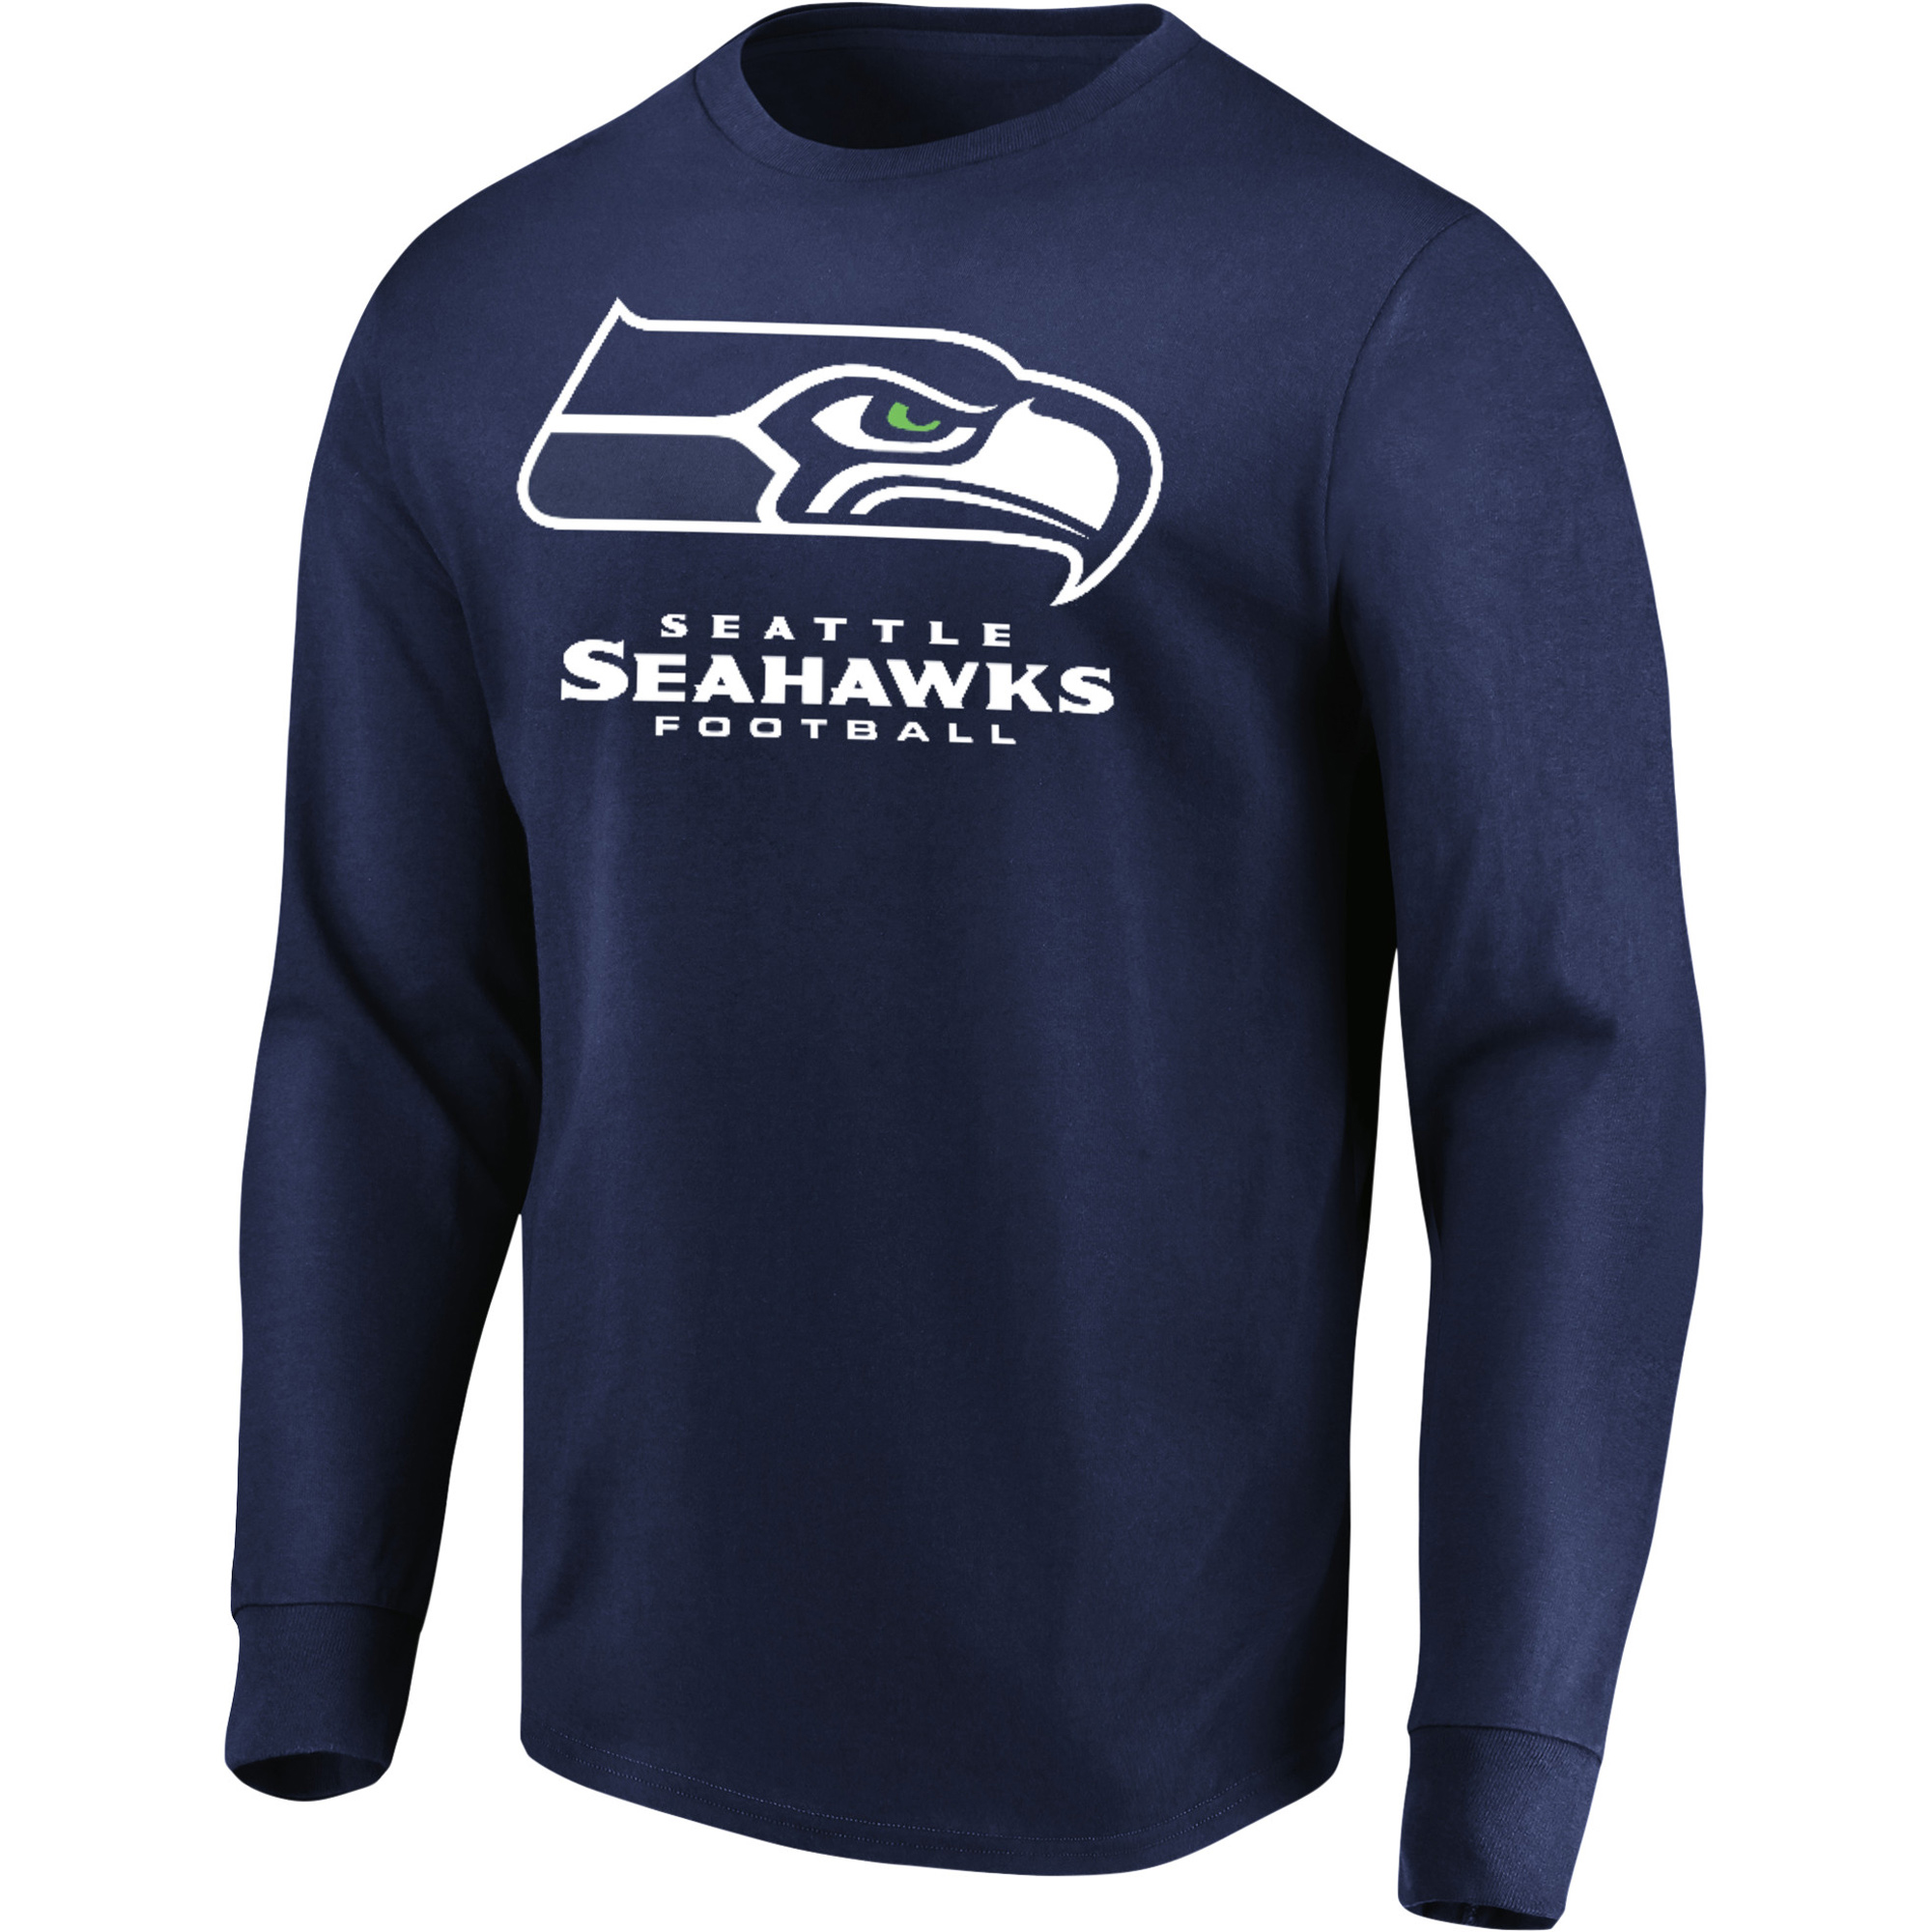 Men's Majestic College Navy Seattle Seahawks Our Team Long Sleeve T-Shirt